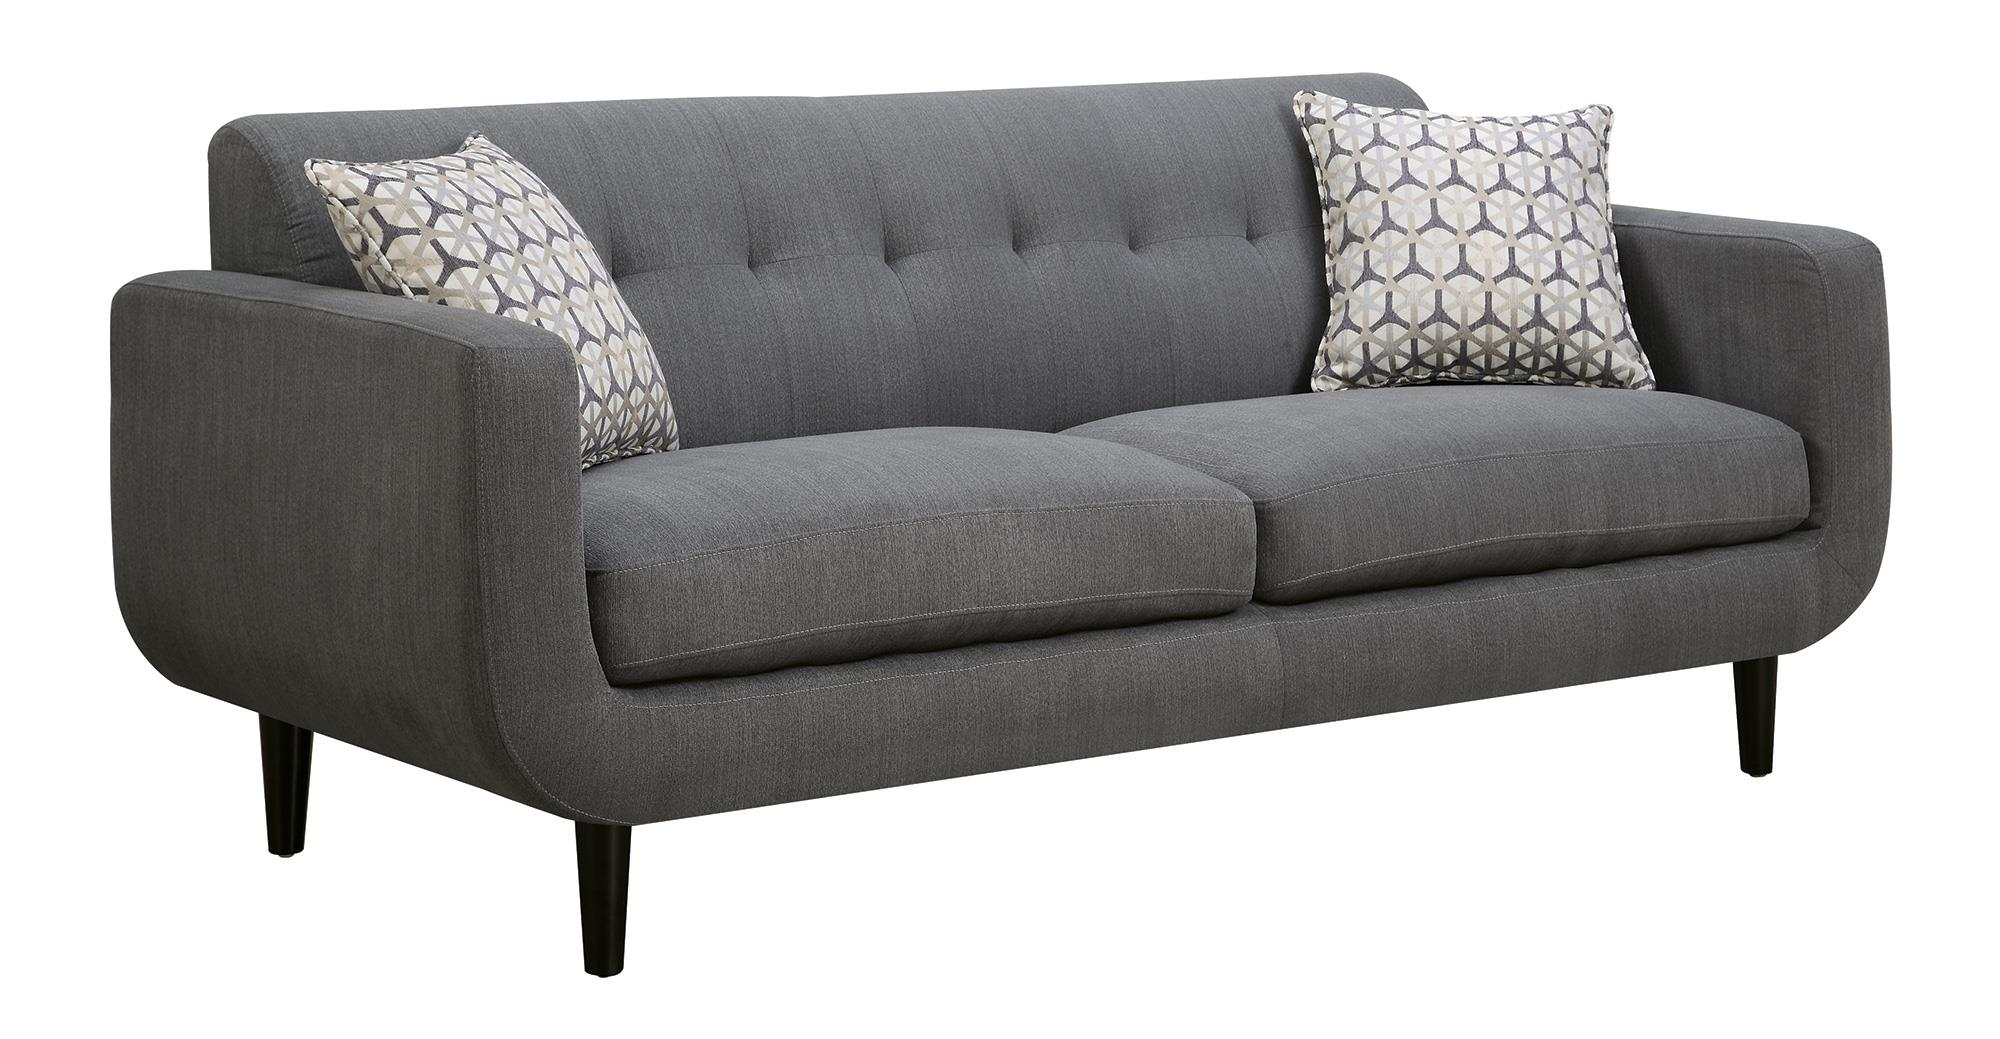 Stansall mid century modern sofa quality furniture at for Affordable modern sofa